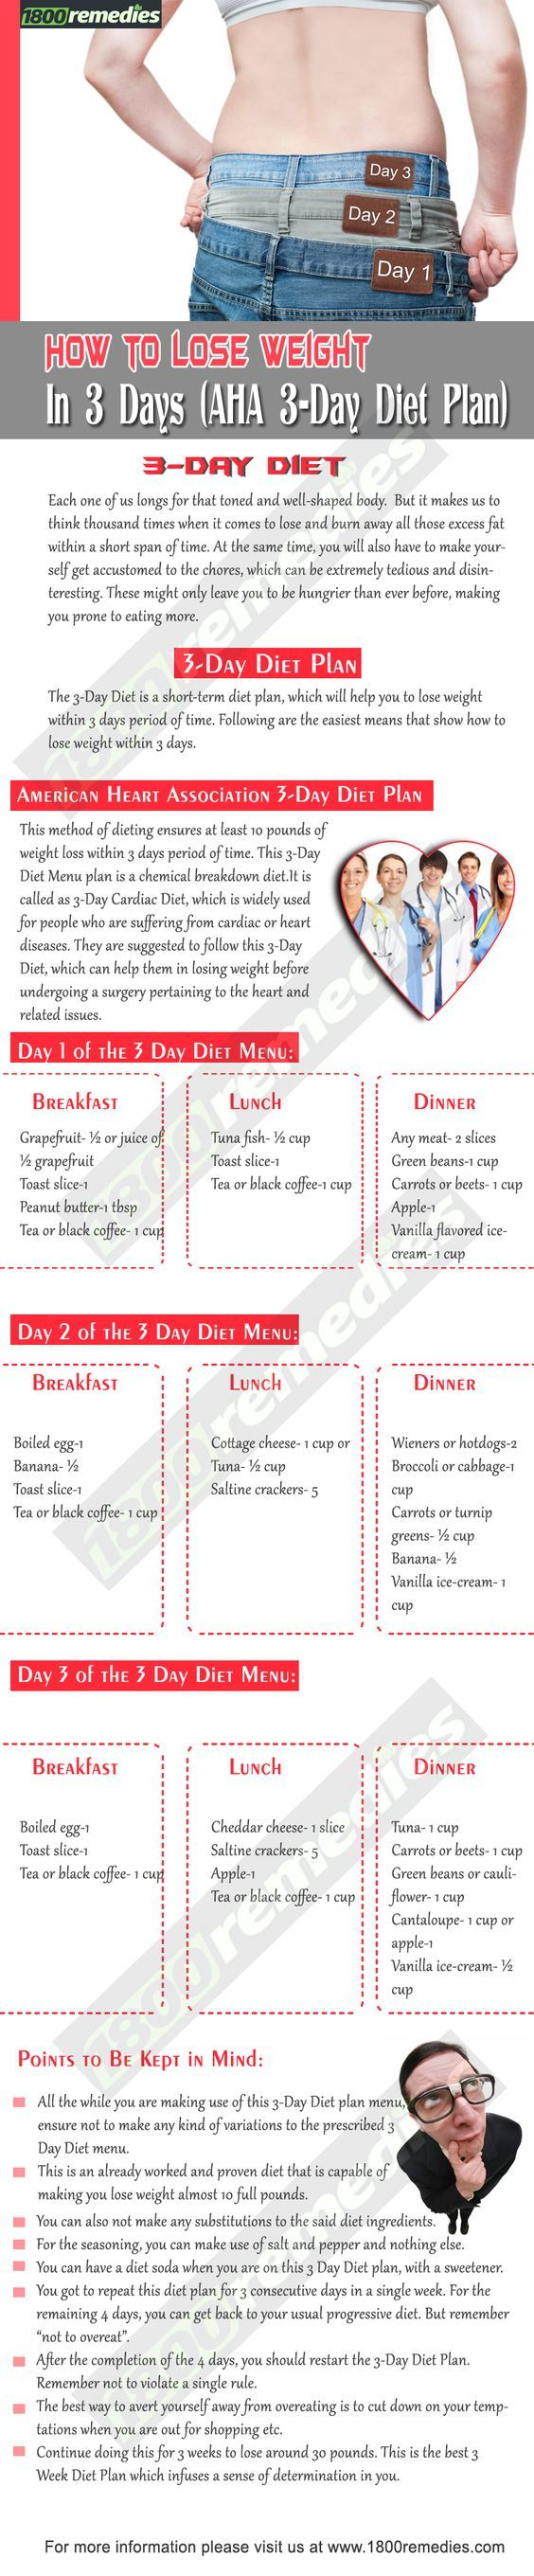 The 3-Day Diet is a short-term diet plan, which will help you to lose weight within 3 days period of time. Following are the easiest means that show how to lose weight within 3 days.: